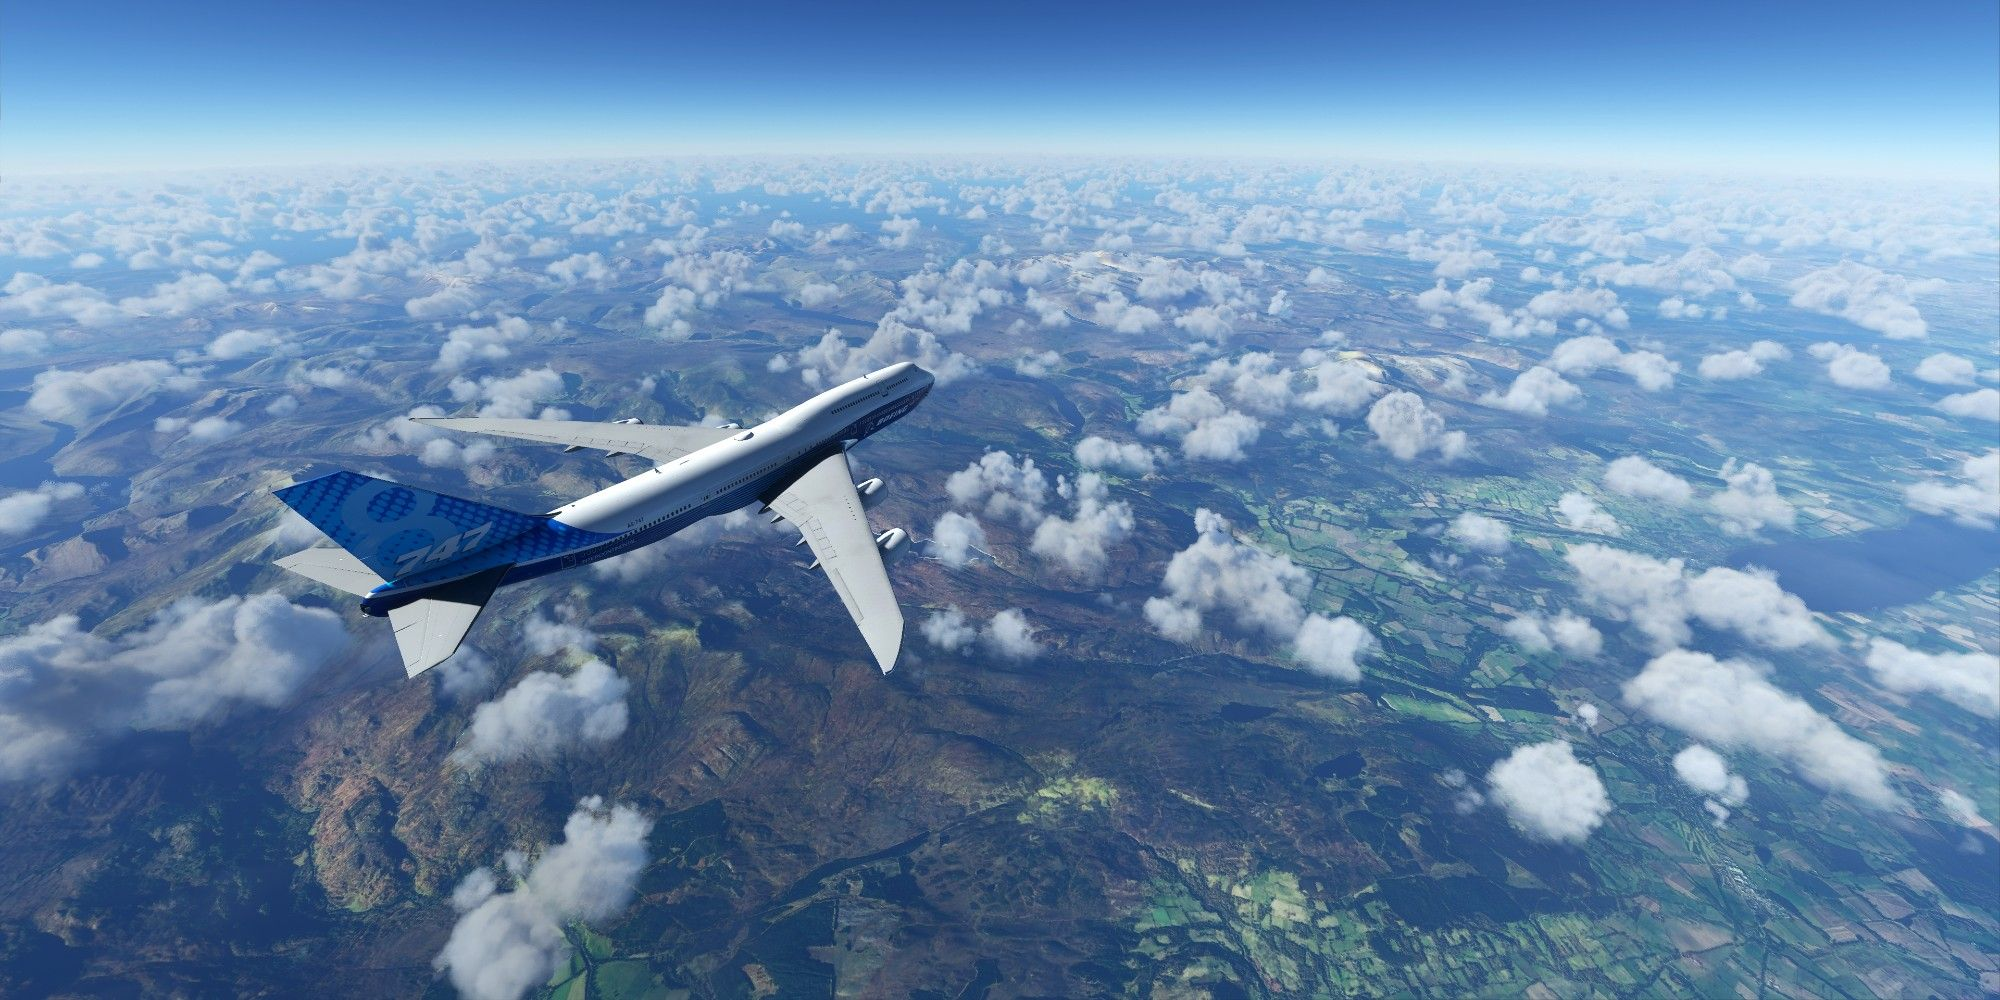 Players can use keyboard combinations or their controller to access and use the features of the Drone Camera in Microsoft Flight Simulator. The new Mi